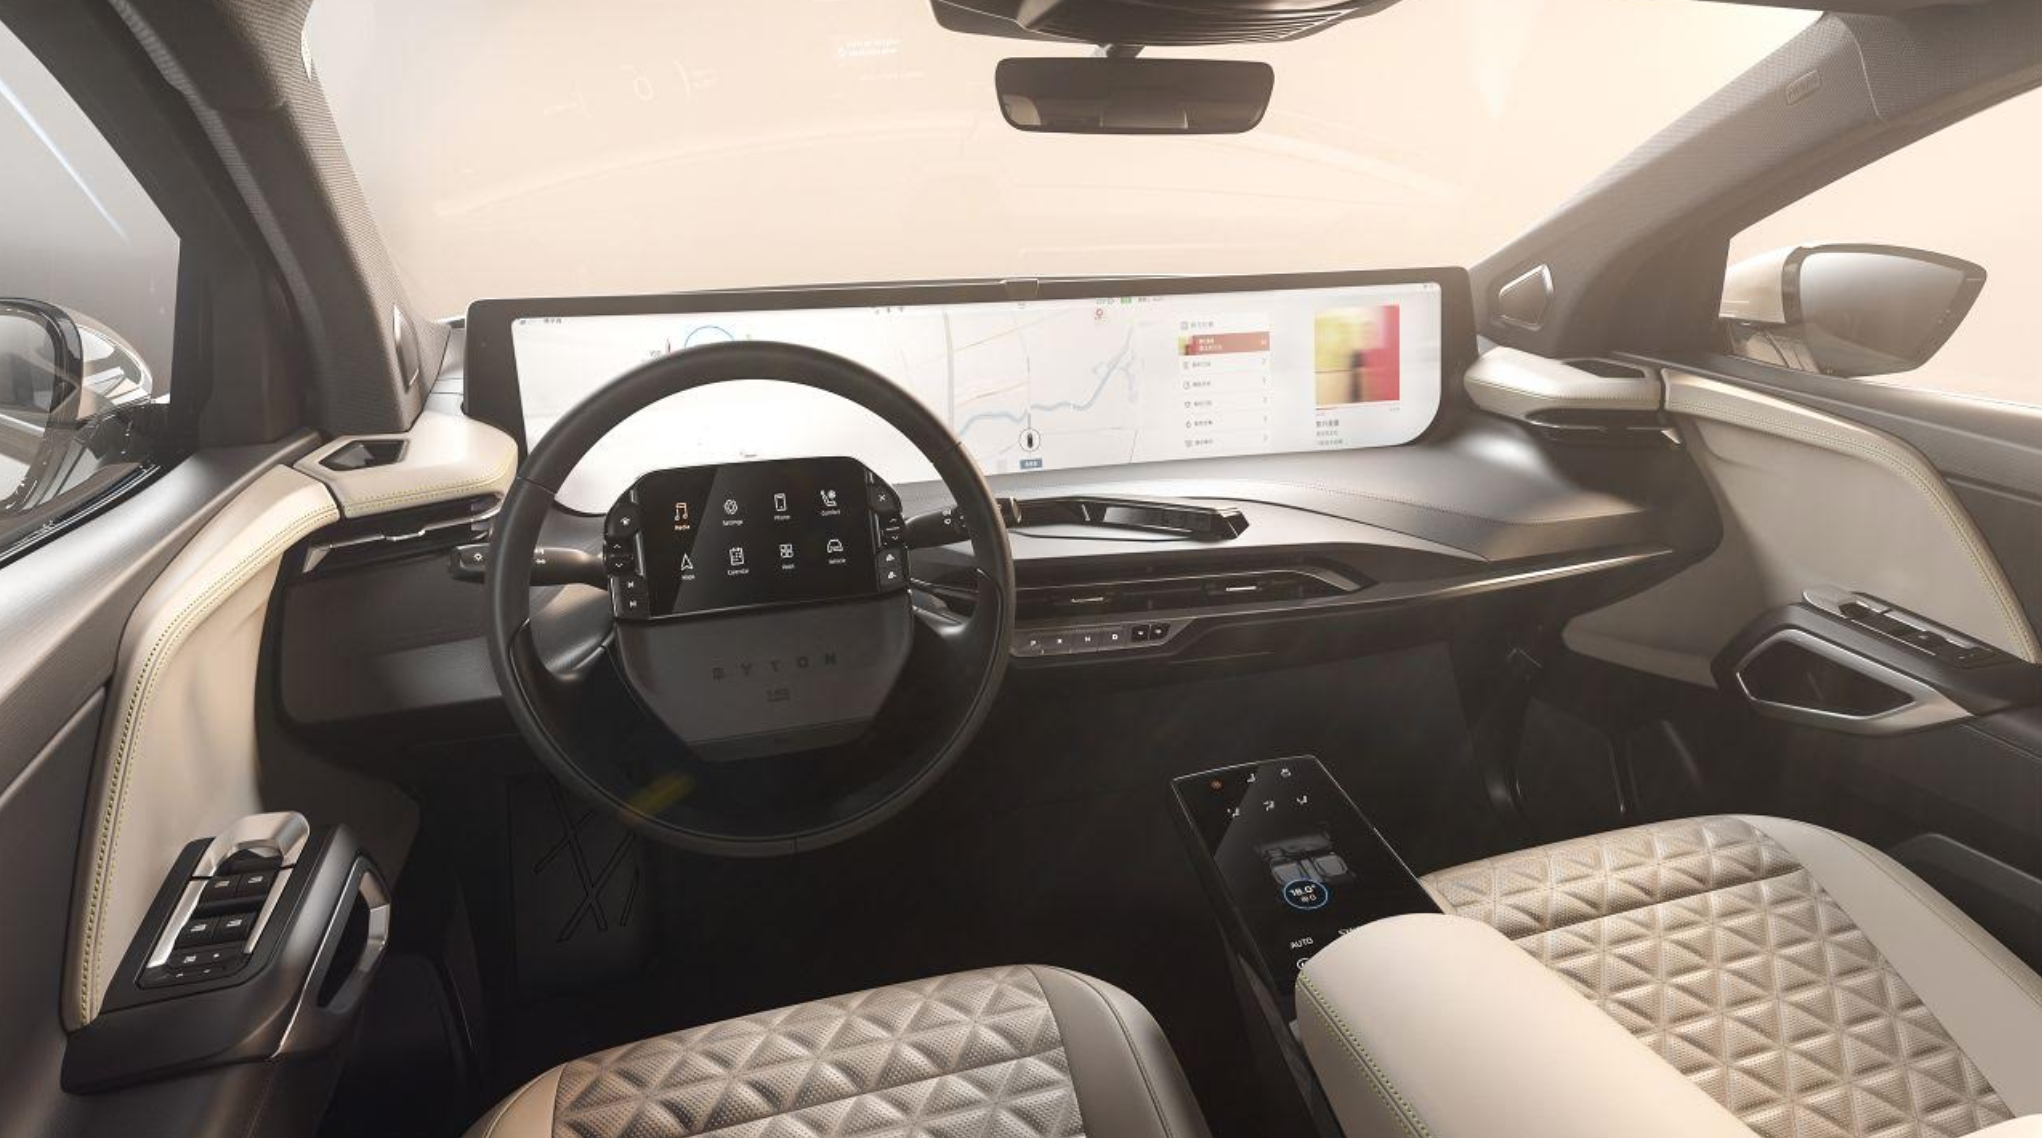 (Photo: Byton's dramatic, futuristic interior will be navigating the Autobahn as soon as next year)